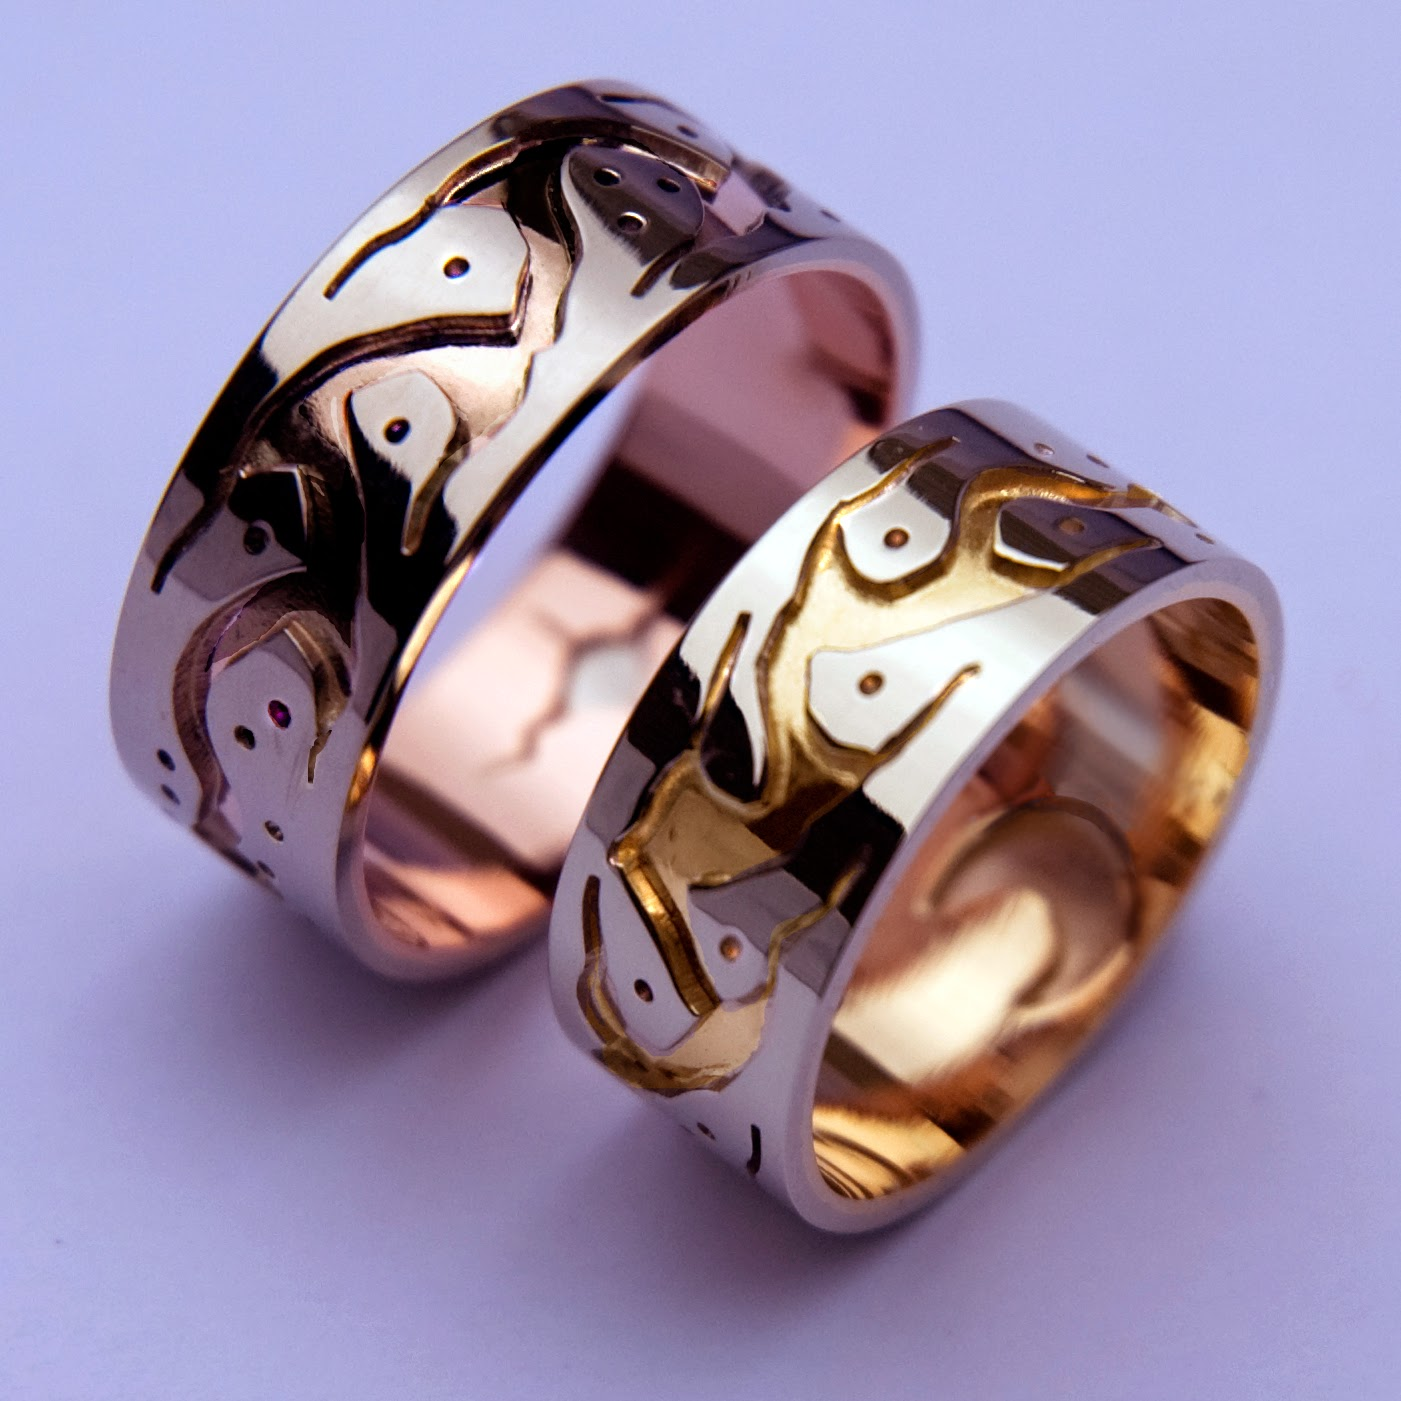 Anishunaabe graphic overlay wedding bands handcrafted by Woodland artist Zhaawano